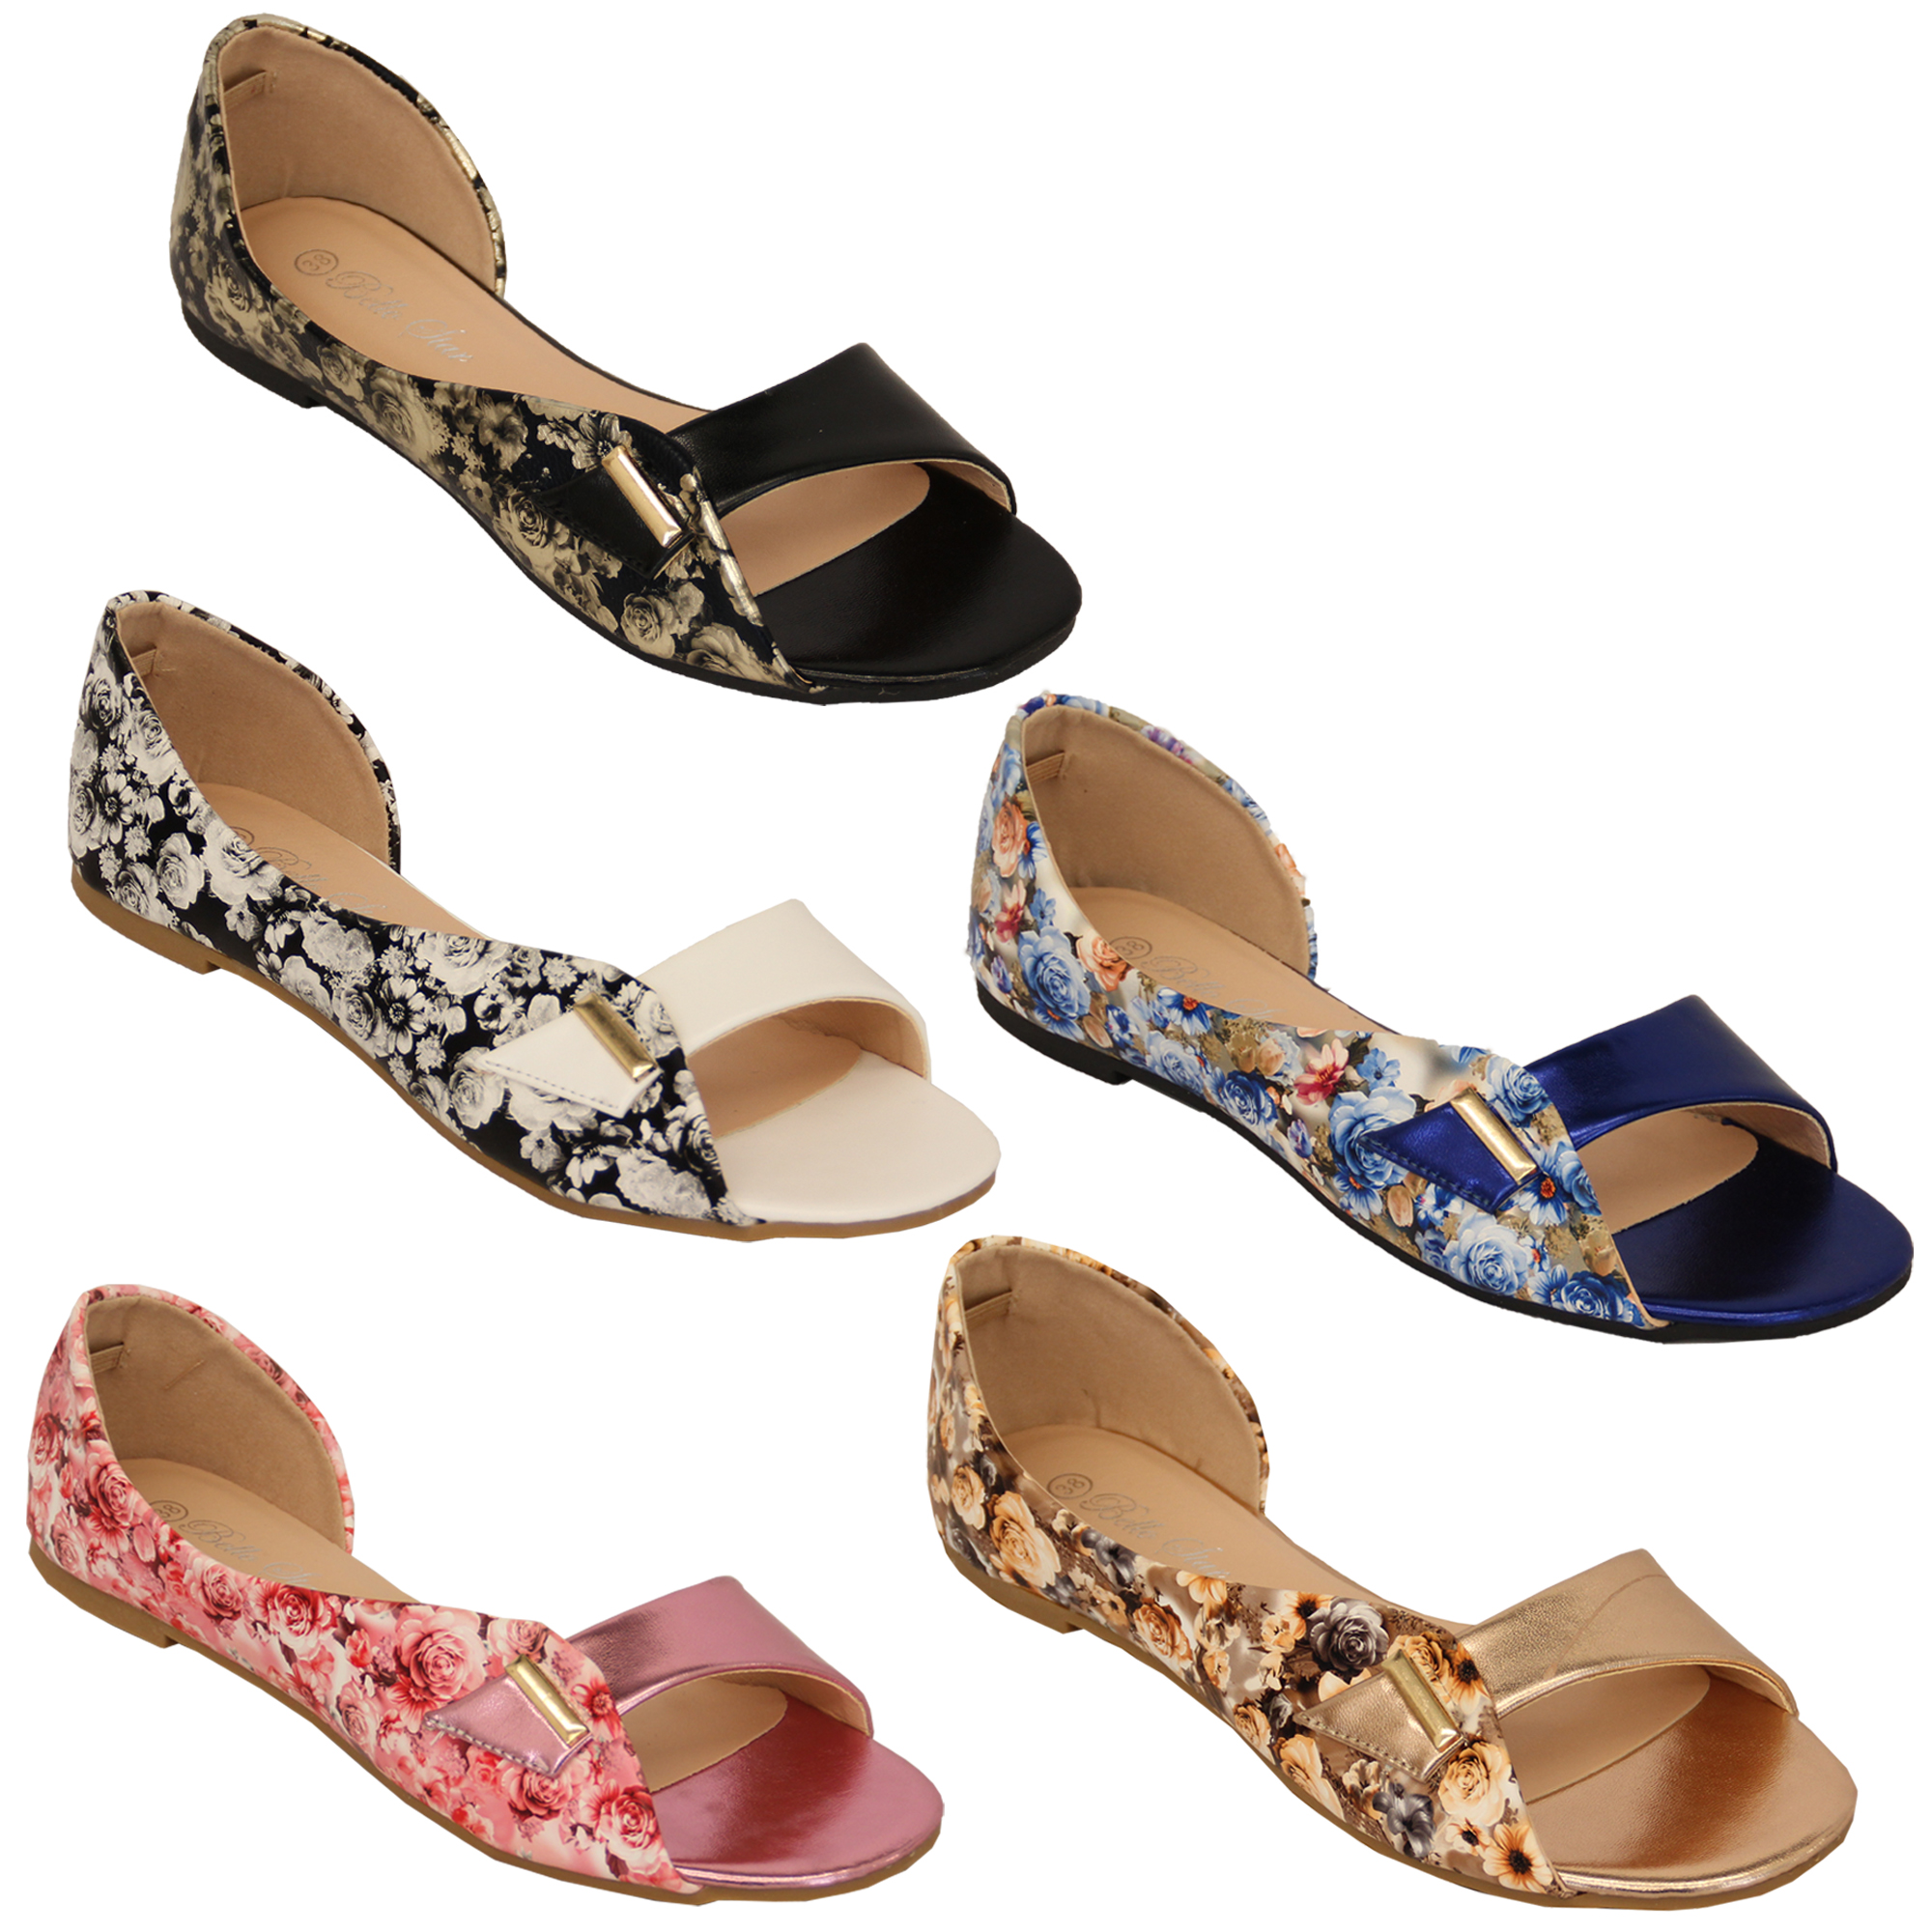 Details about ladies flat sandals floral print womens slip on open toe bella star casual shoes